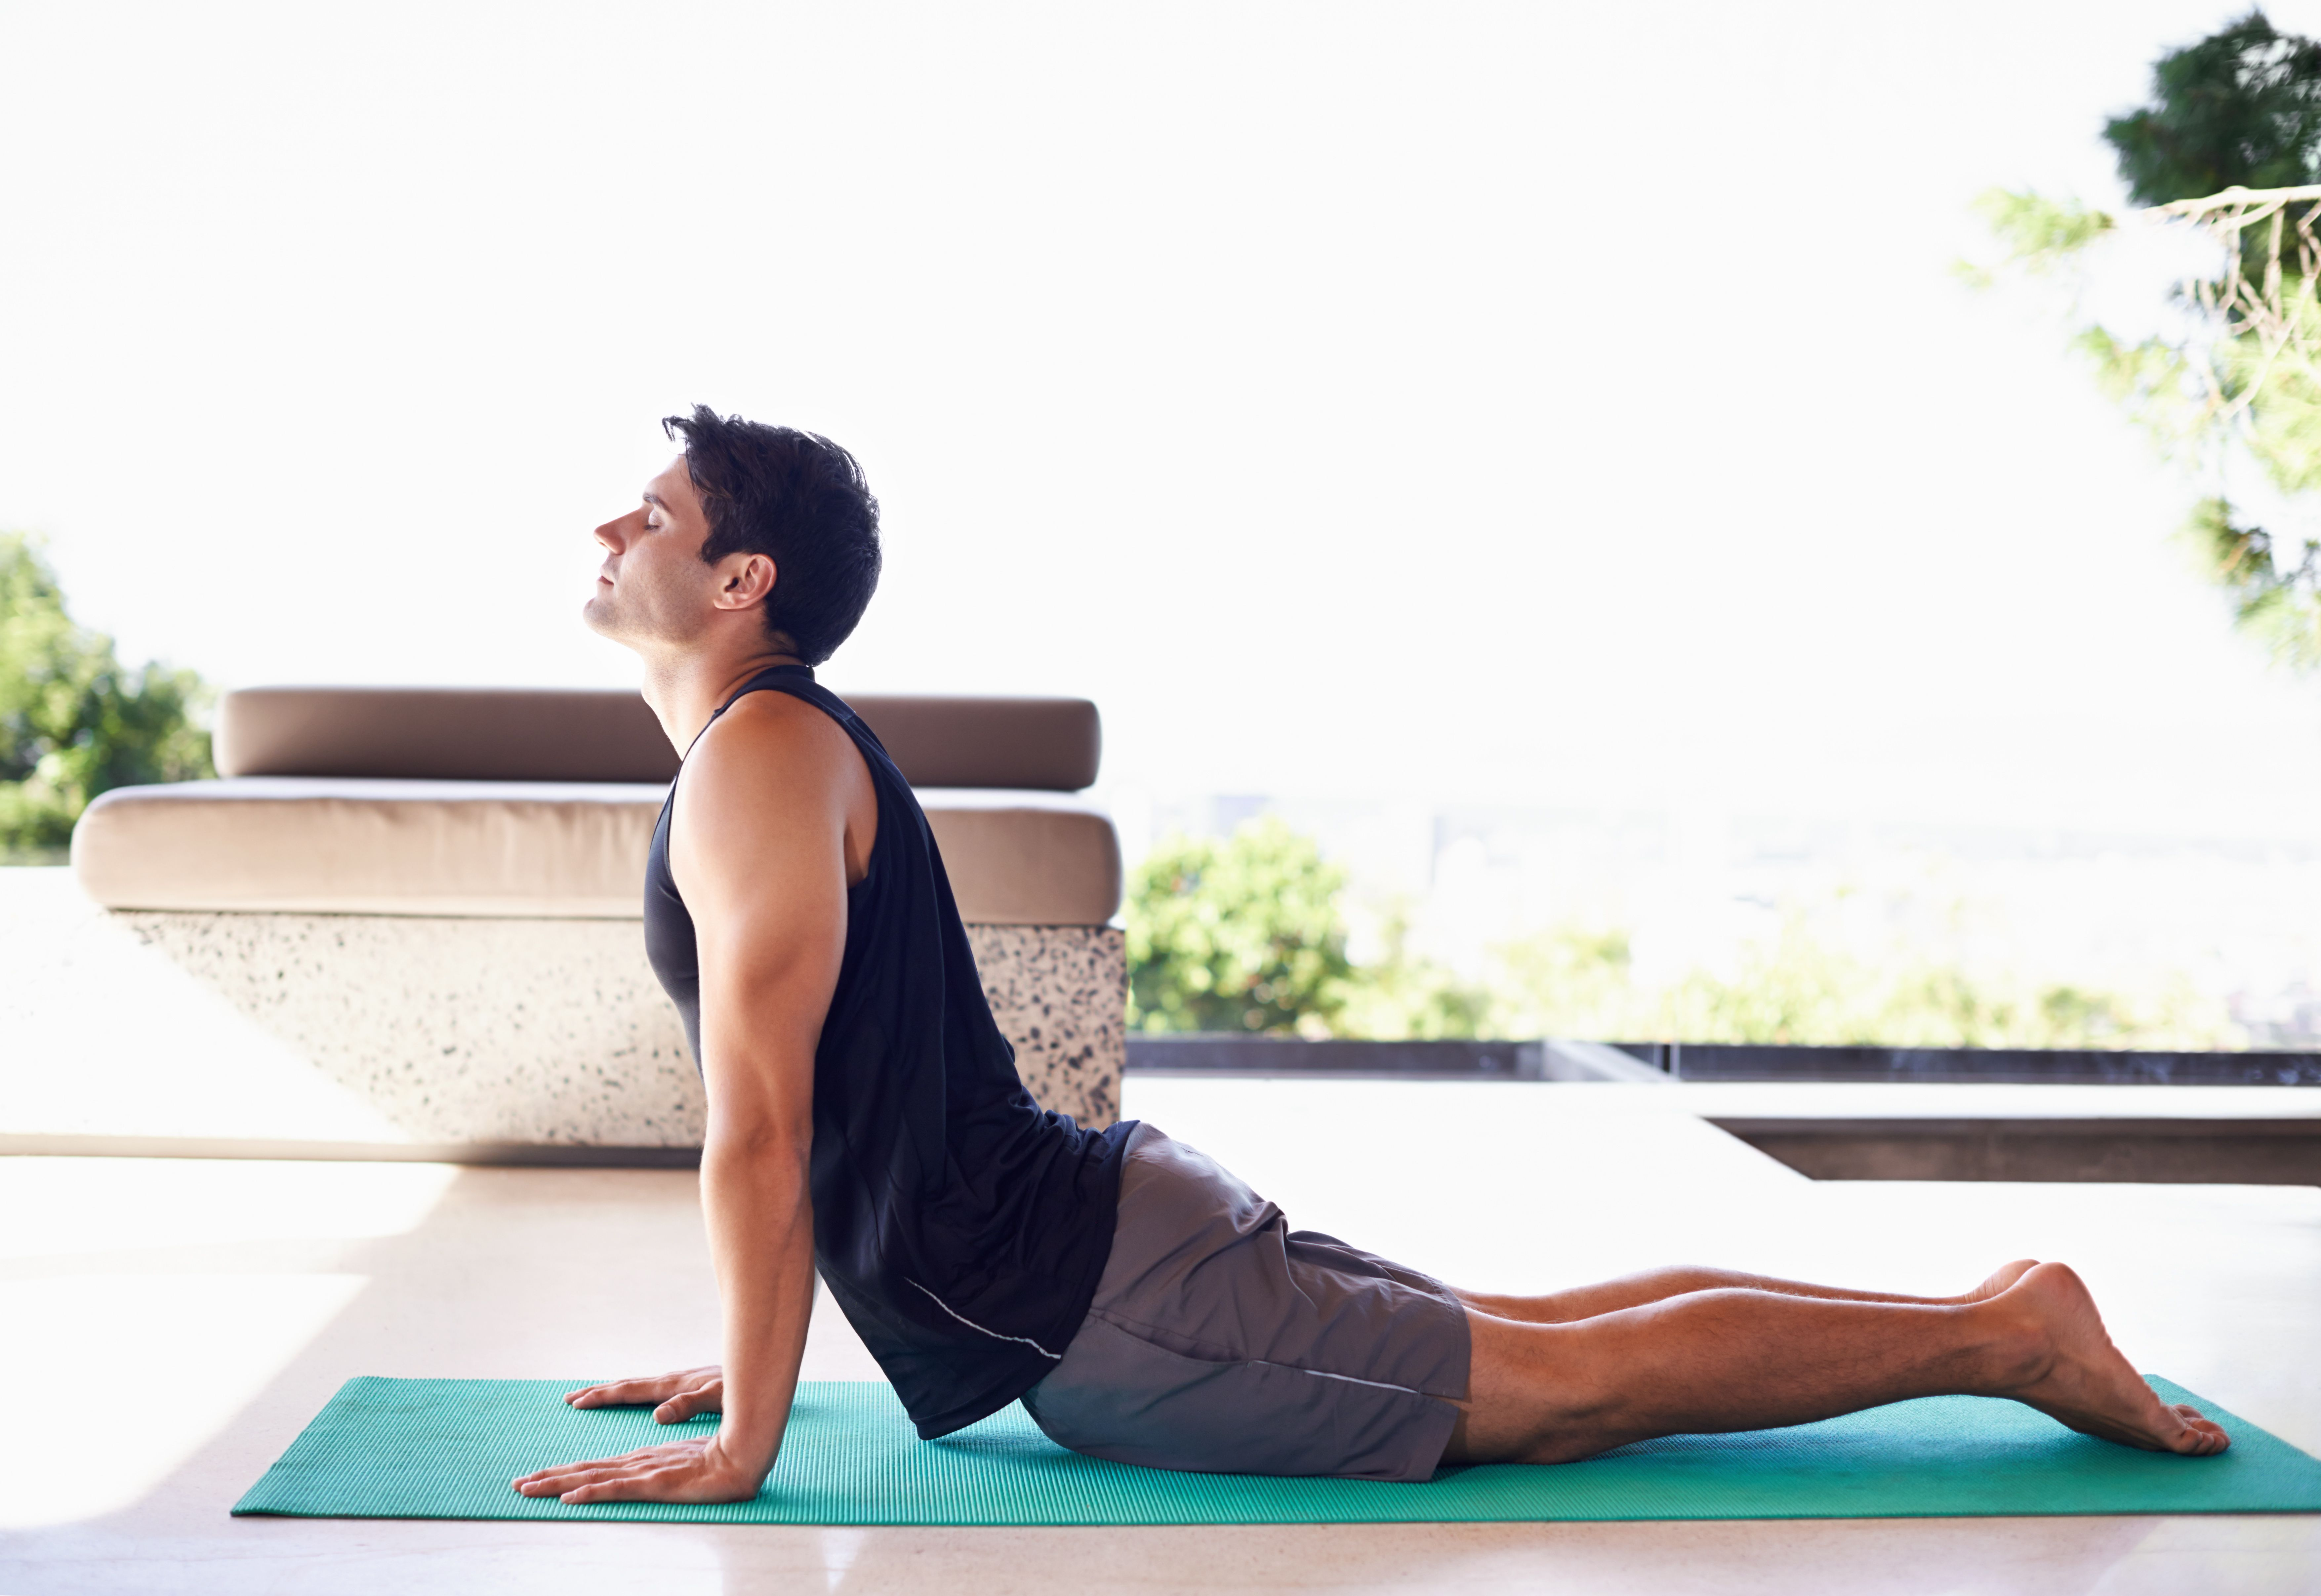 This Home Mobility Flow Is Designed to Help Your Lower Back